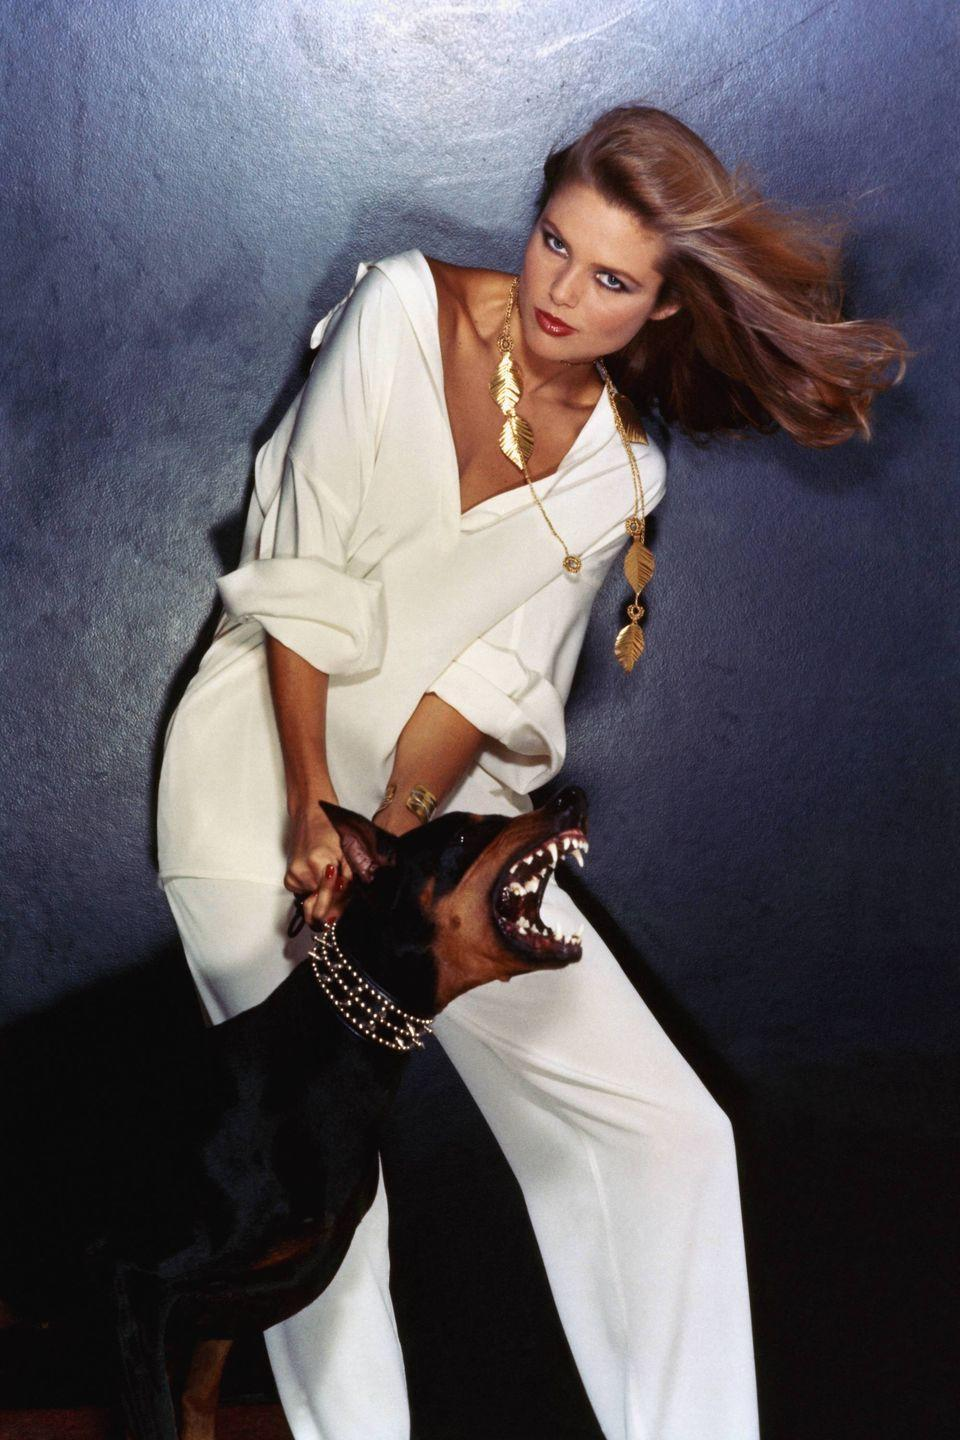 "<p>Christie Brinkley has her dog to thank for her modeling career. In an <a href=""https://wwd.com/eye/people/christie-brinkley-ageism-and-healthy-living-10922910/"" rel=""nofollow noopener"" target=""_blank"" data-ylk=""slk:interview with WWD"" class=""link rapid-noclick-resp"">interview with <em>WWD</em></a>, Brinkley revealed that, while calling a veterinarian for her sick dog in Paris, she met a photographer at the telephoning office who saw her potential. He asked to shoot her for a project, and Brinkley has since graced photoshoot sets worldwide. <em>Merci</em>, pooch!</p>"